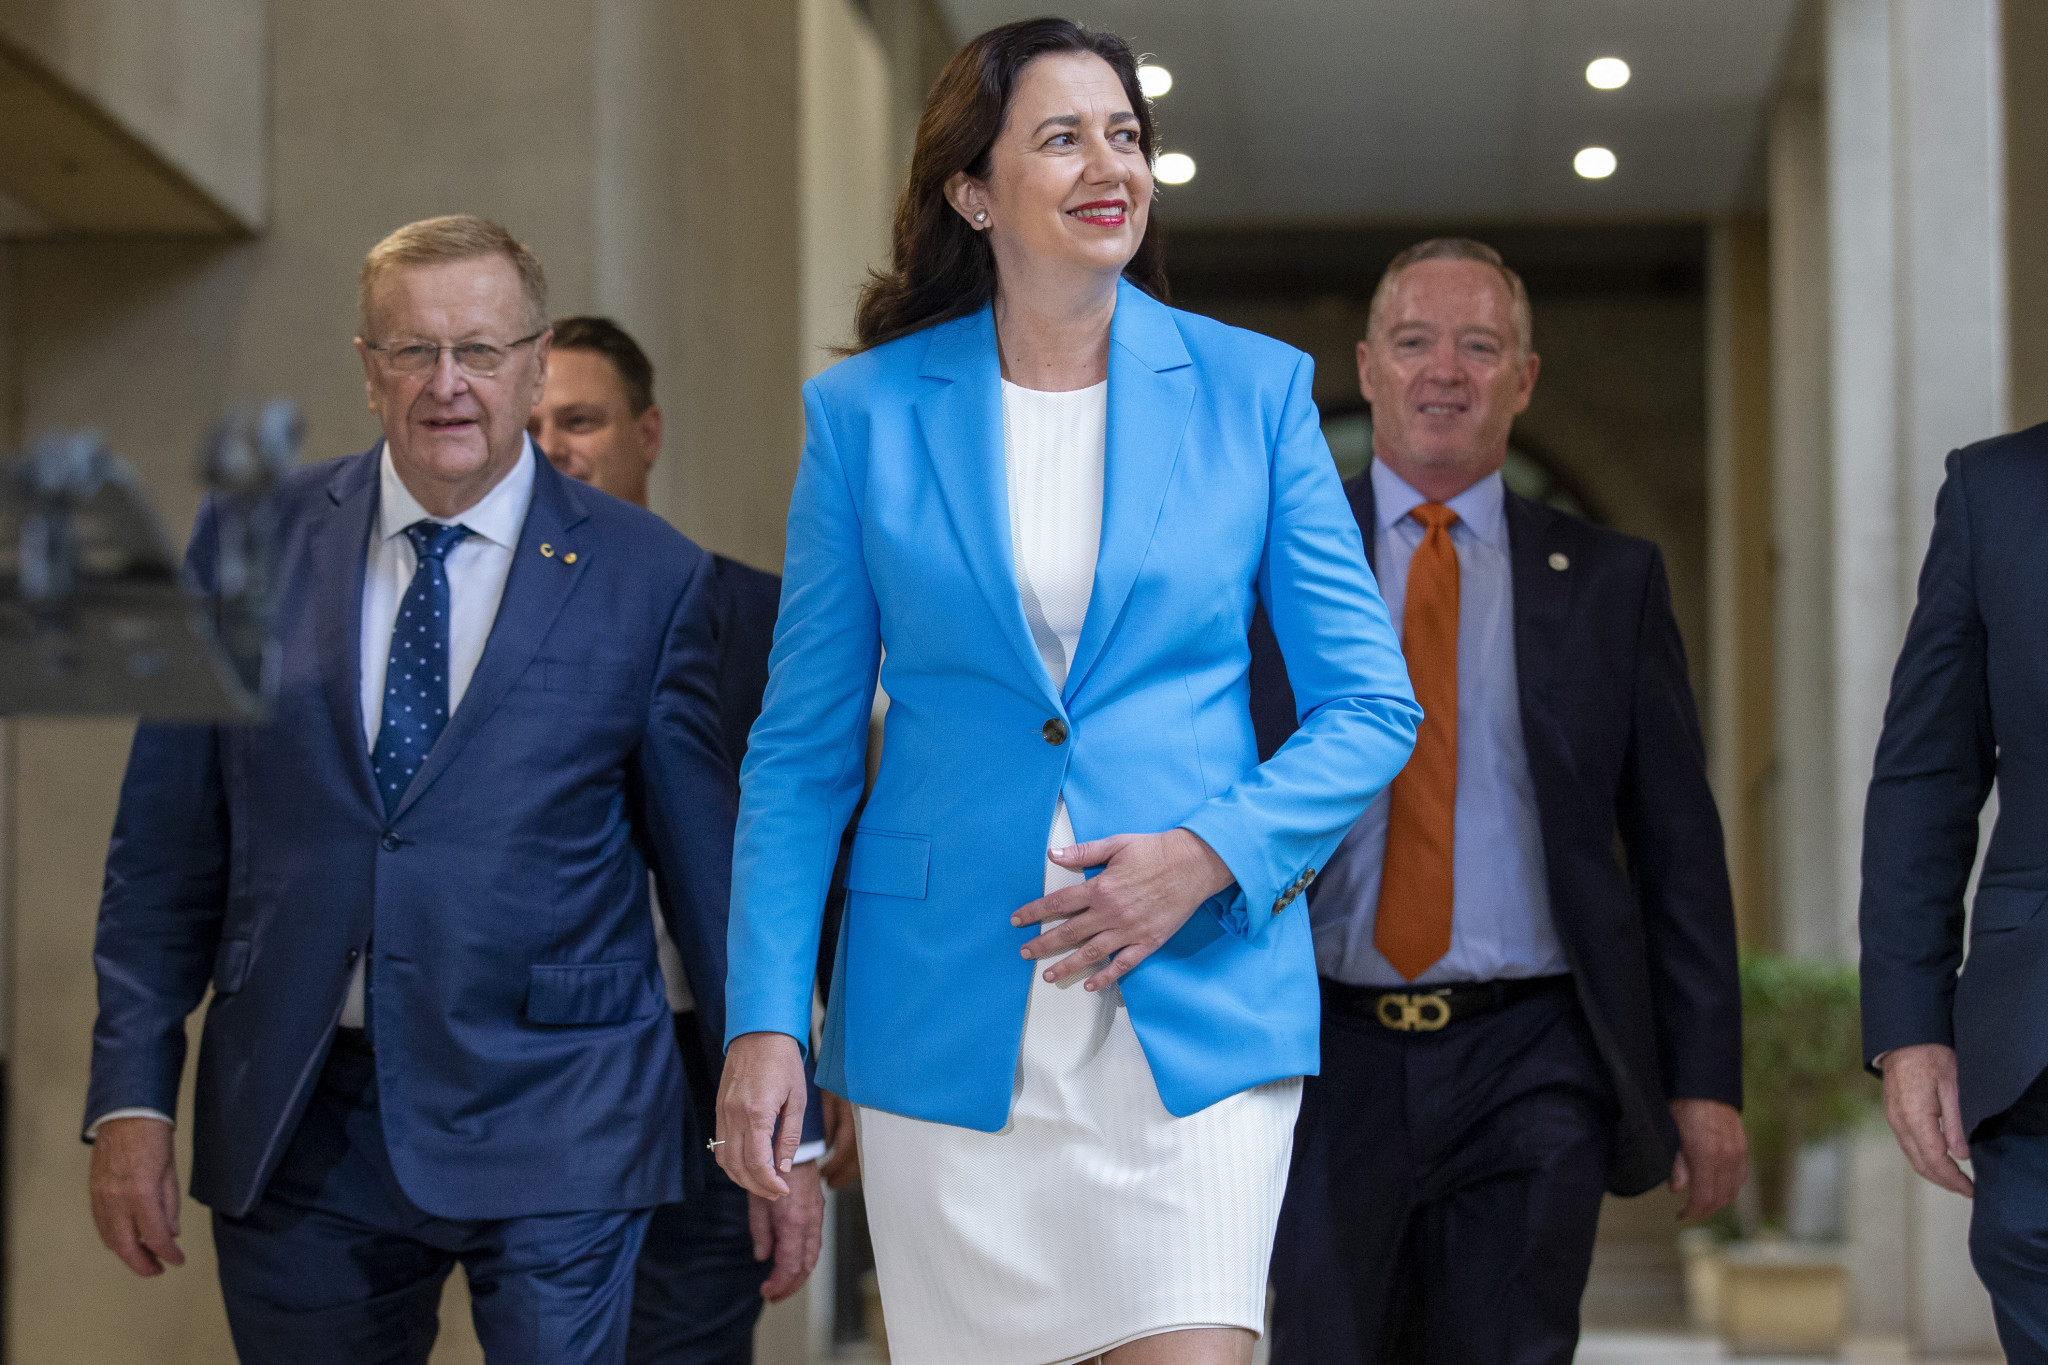 Queensland Premier Annastacia Palaszczuk has suggested one major stadium could be constructed for the Games ©Getty Images